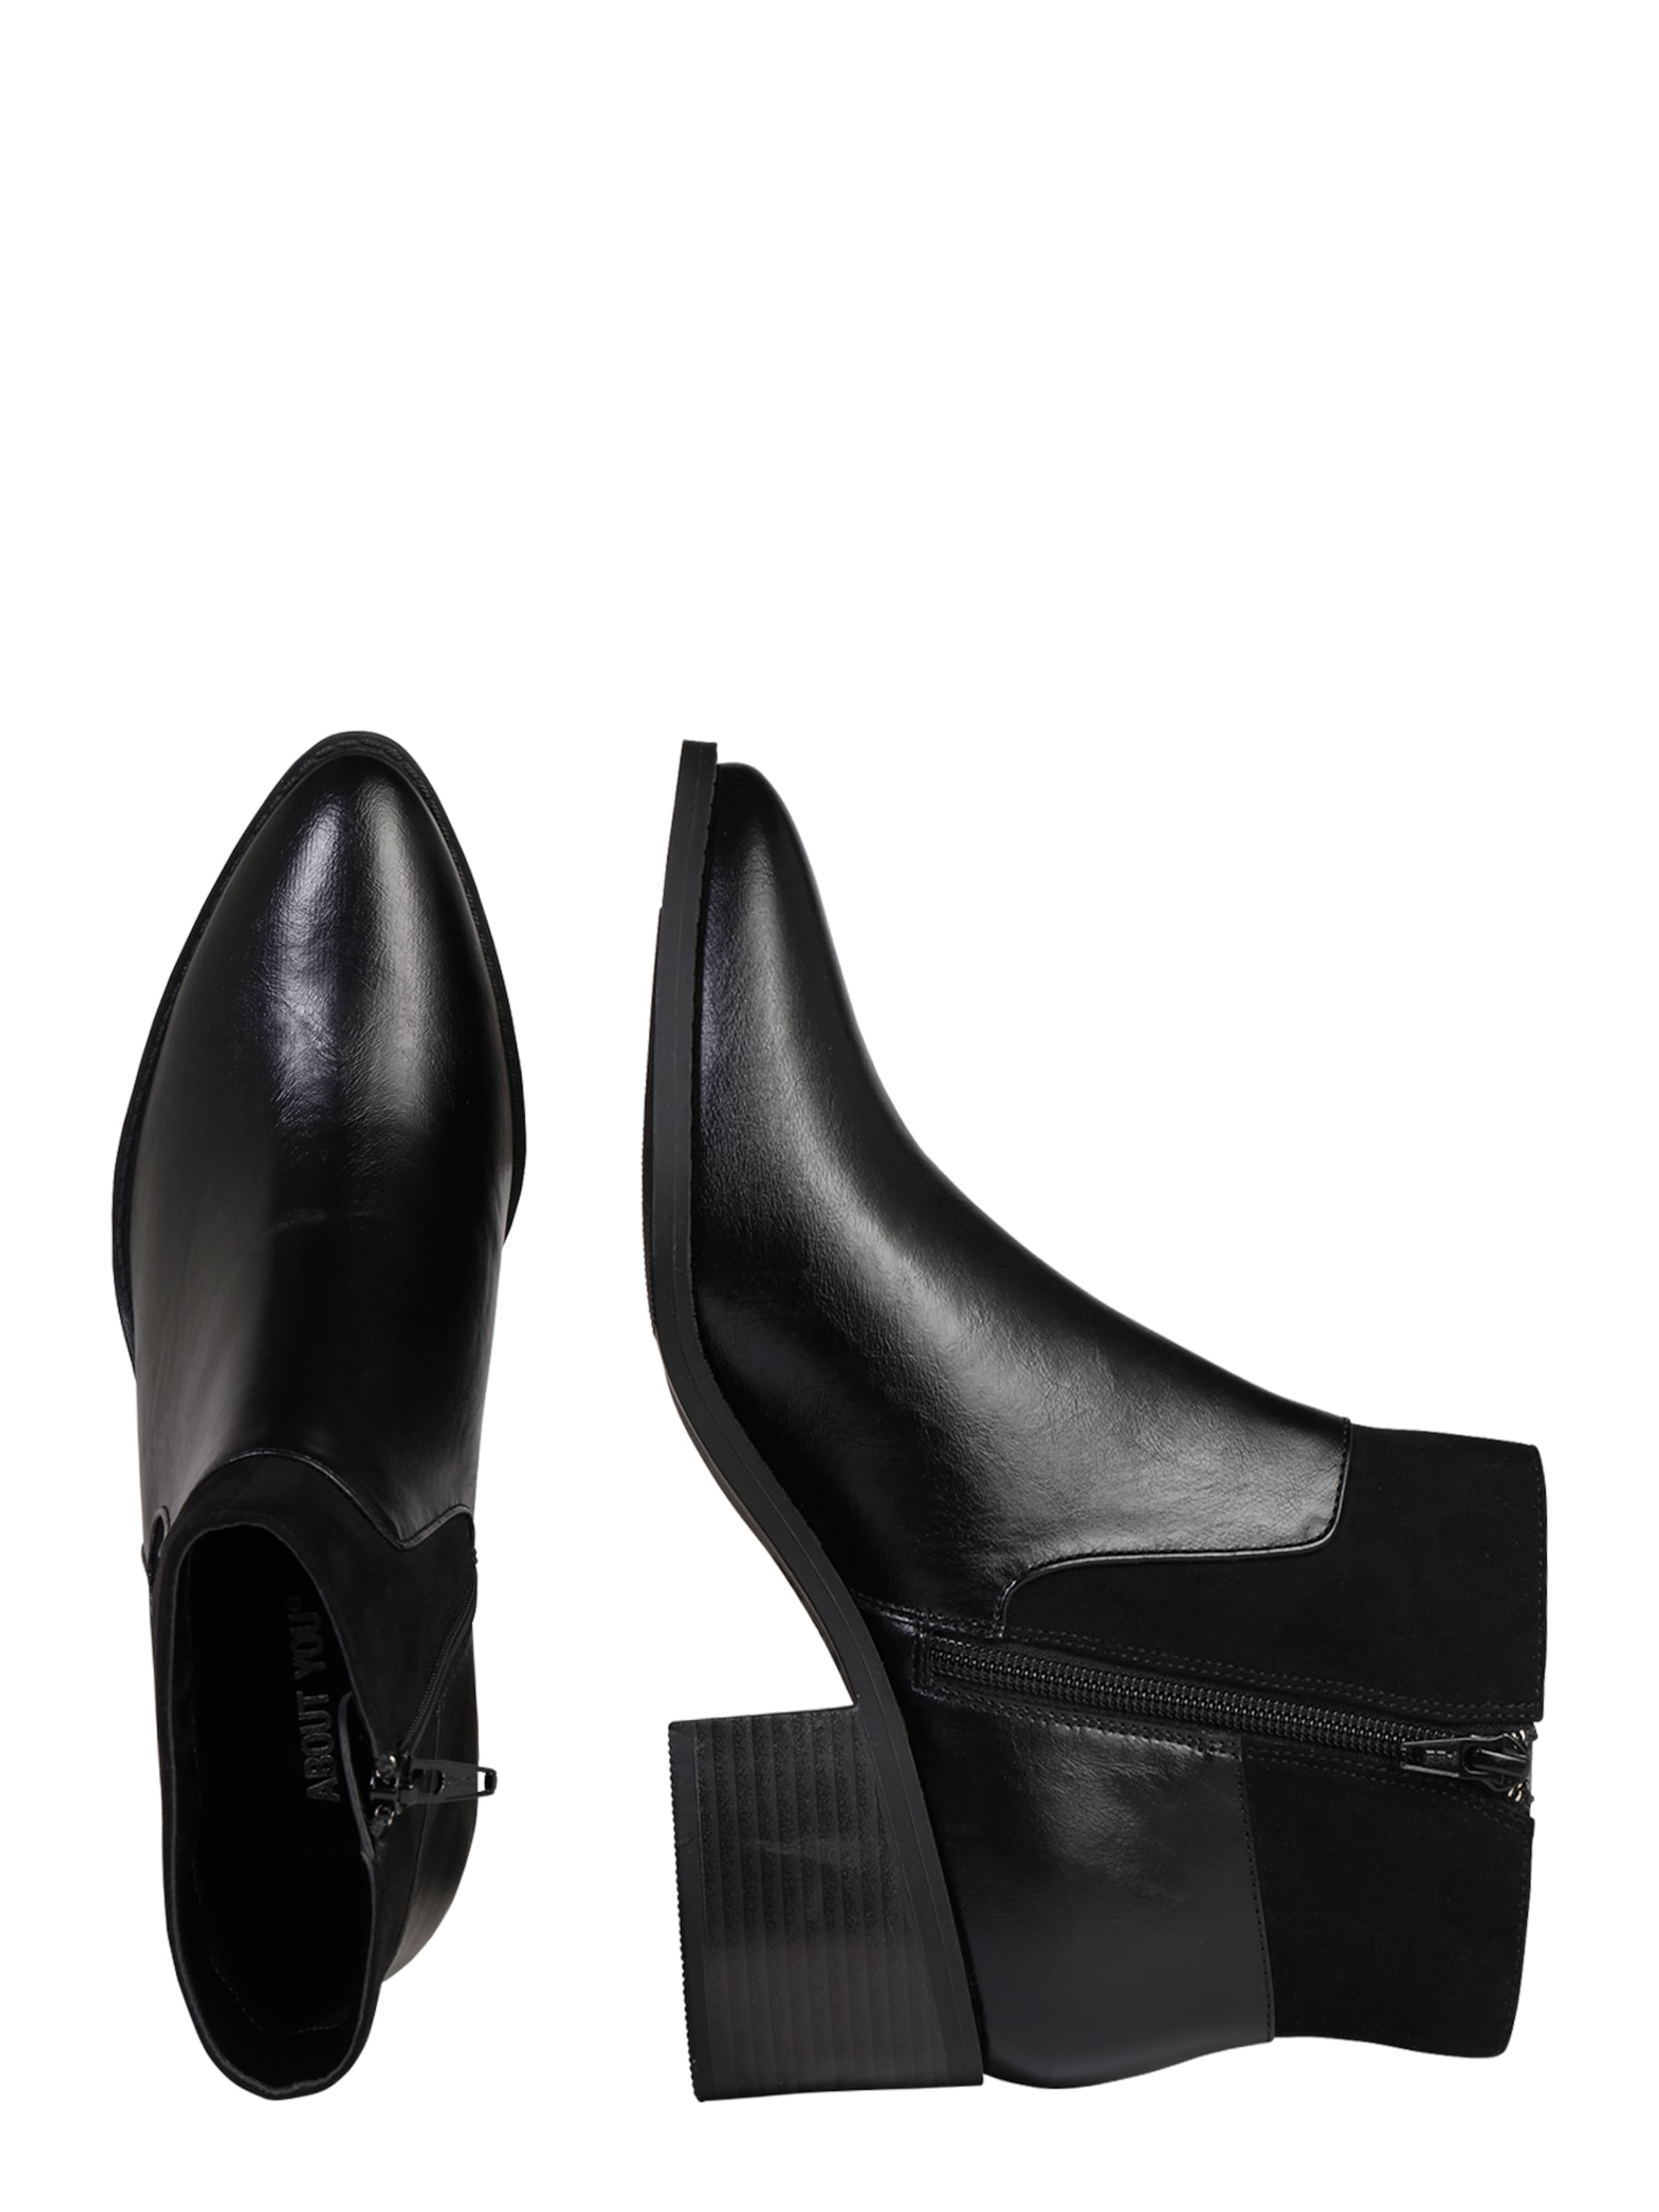 You 'miray' About Bottines En Noir bf7g6IYyv